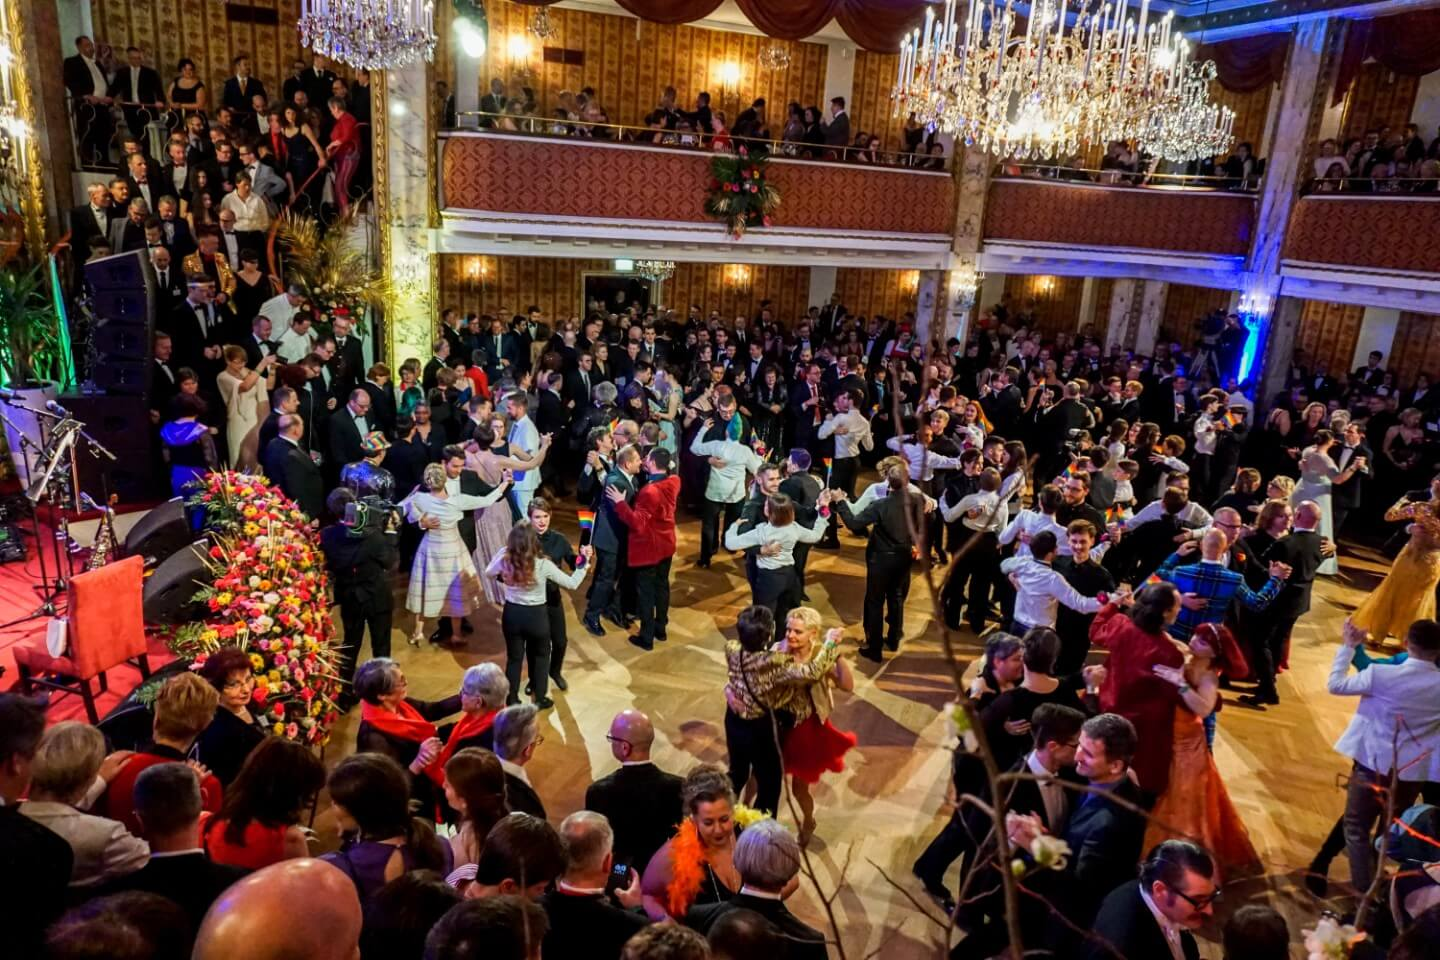 Vienna Rainbow Ball (Wiener Regenbogenball) - The most elegant LGBTQ event in Austria